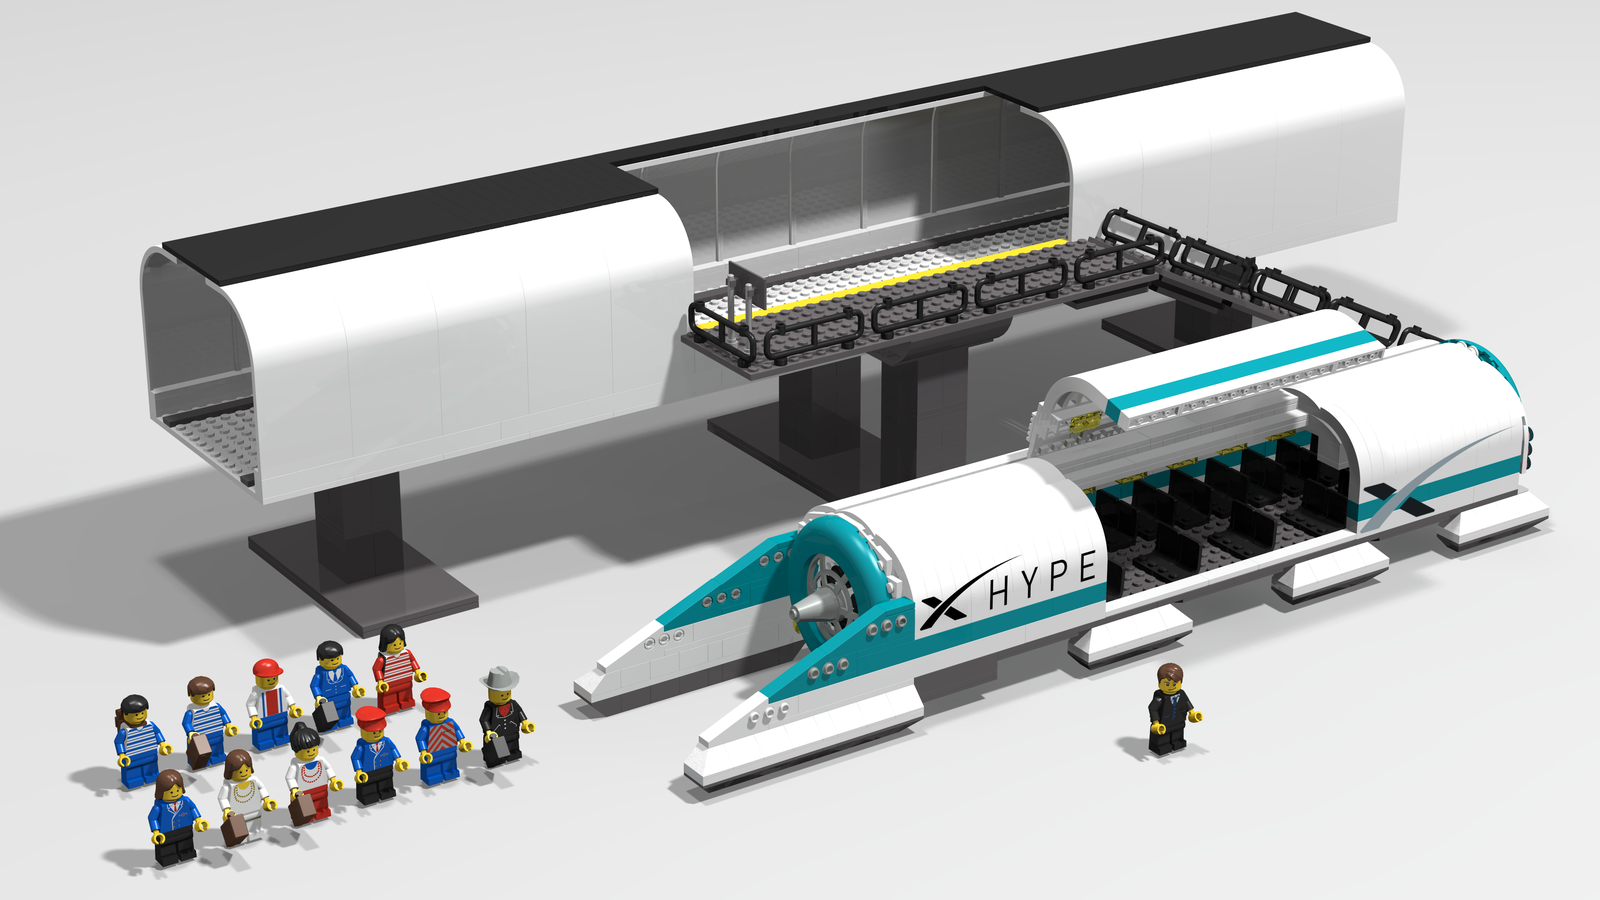 hyperloop pod and station